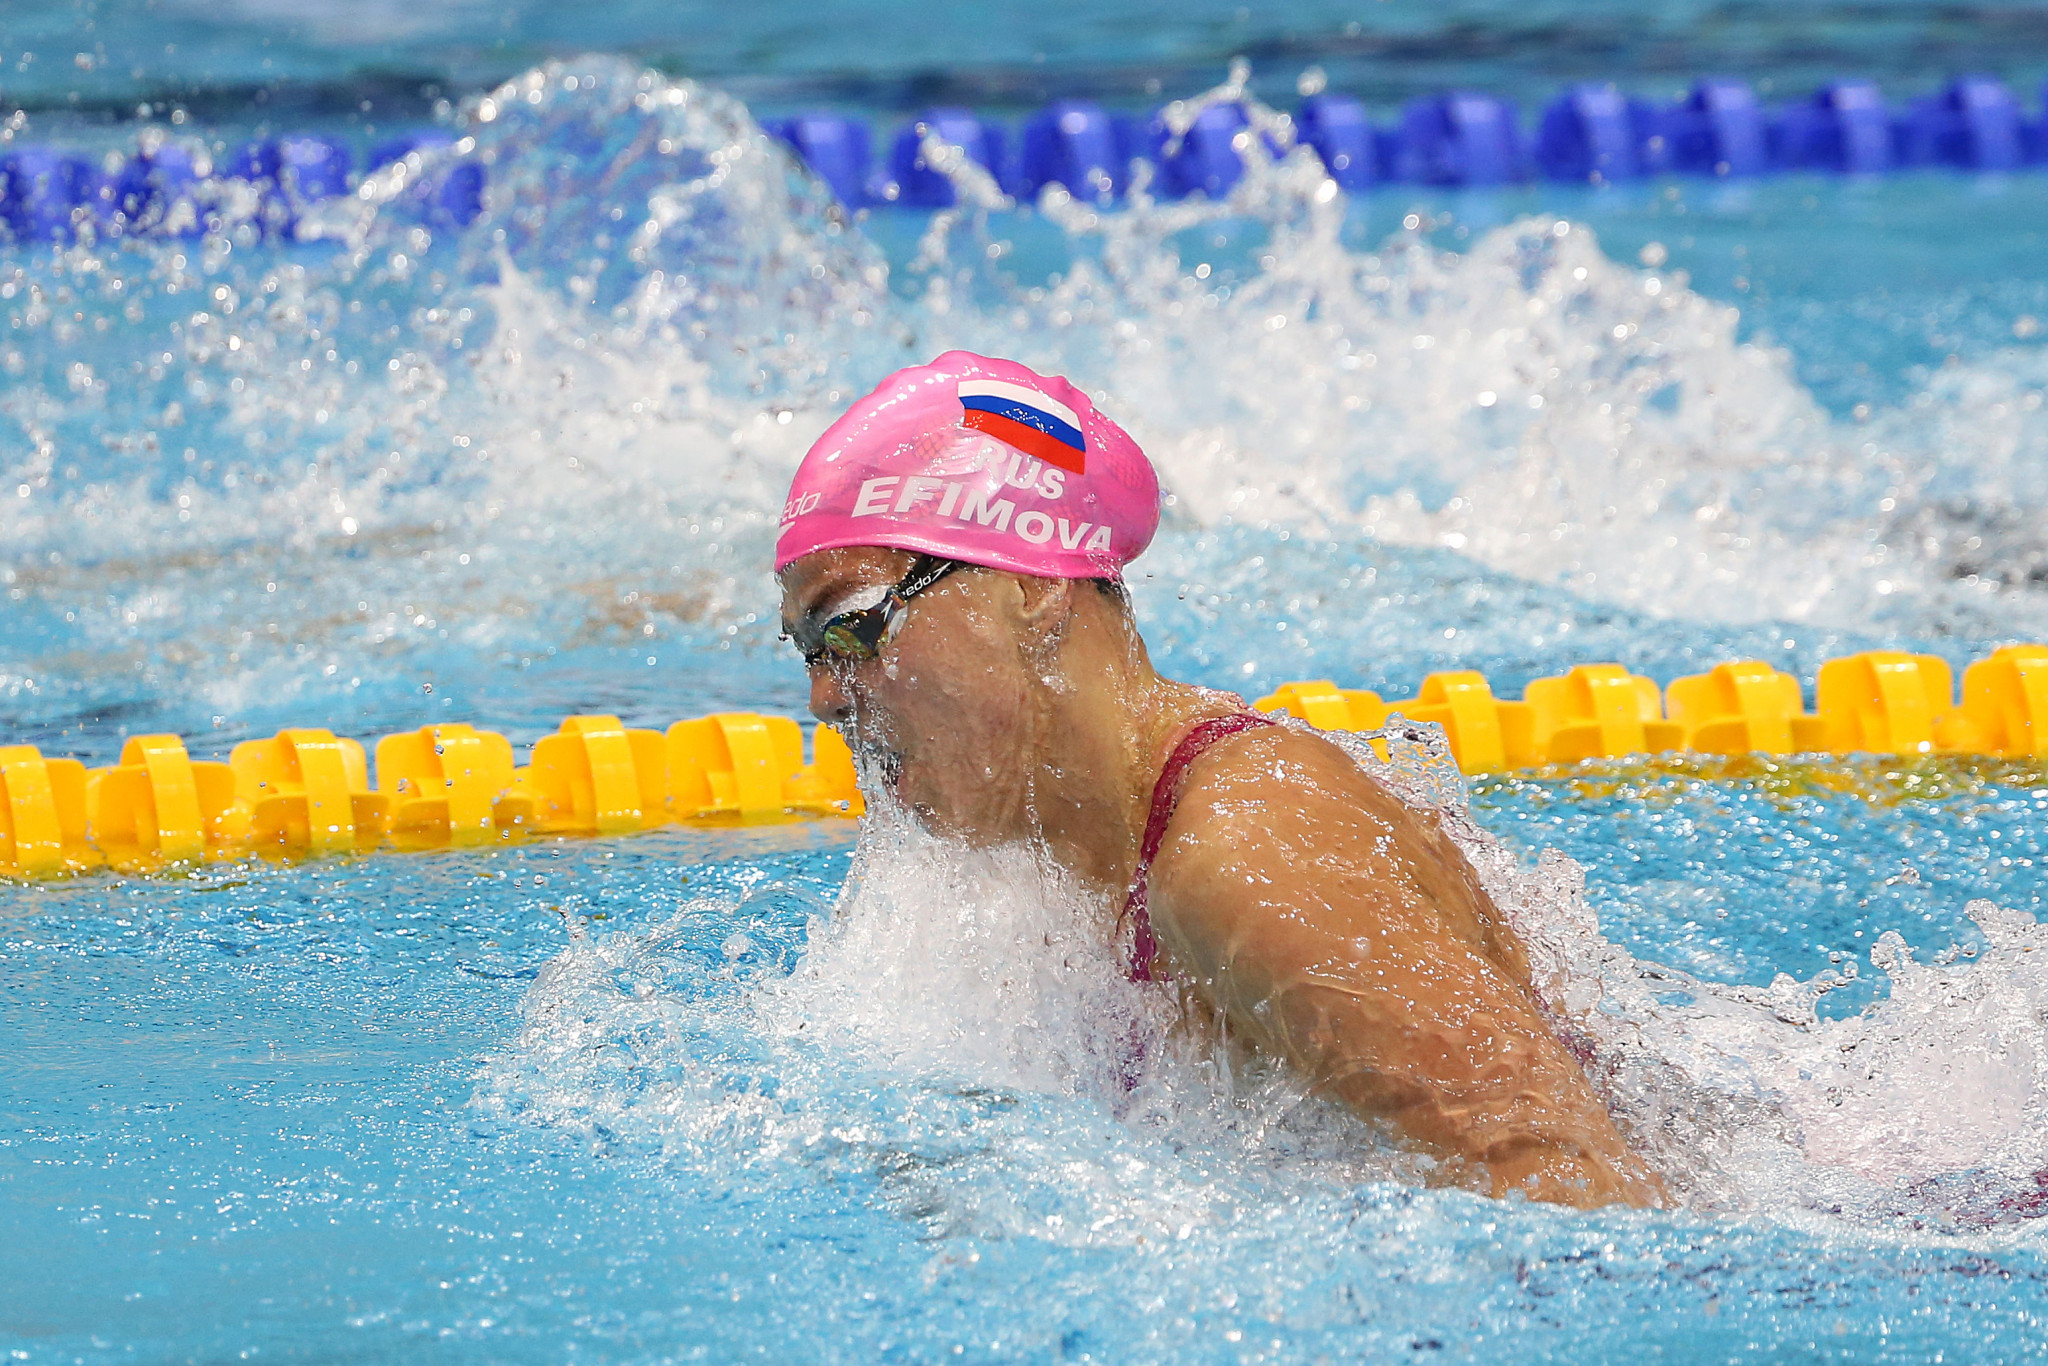 Yuliya Efimova set two world-leading times as she made her Champions Swim Series debut ©Getty Images